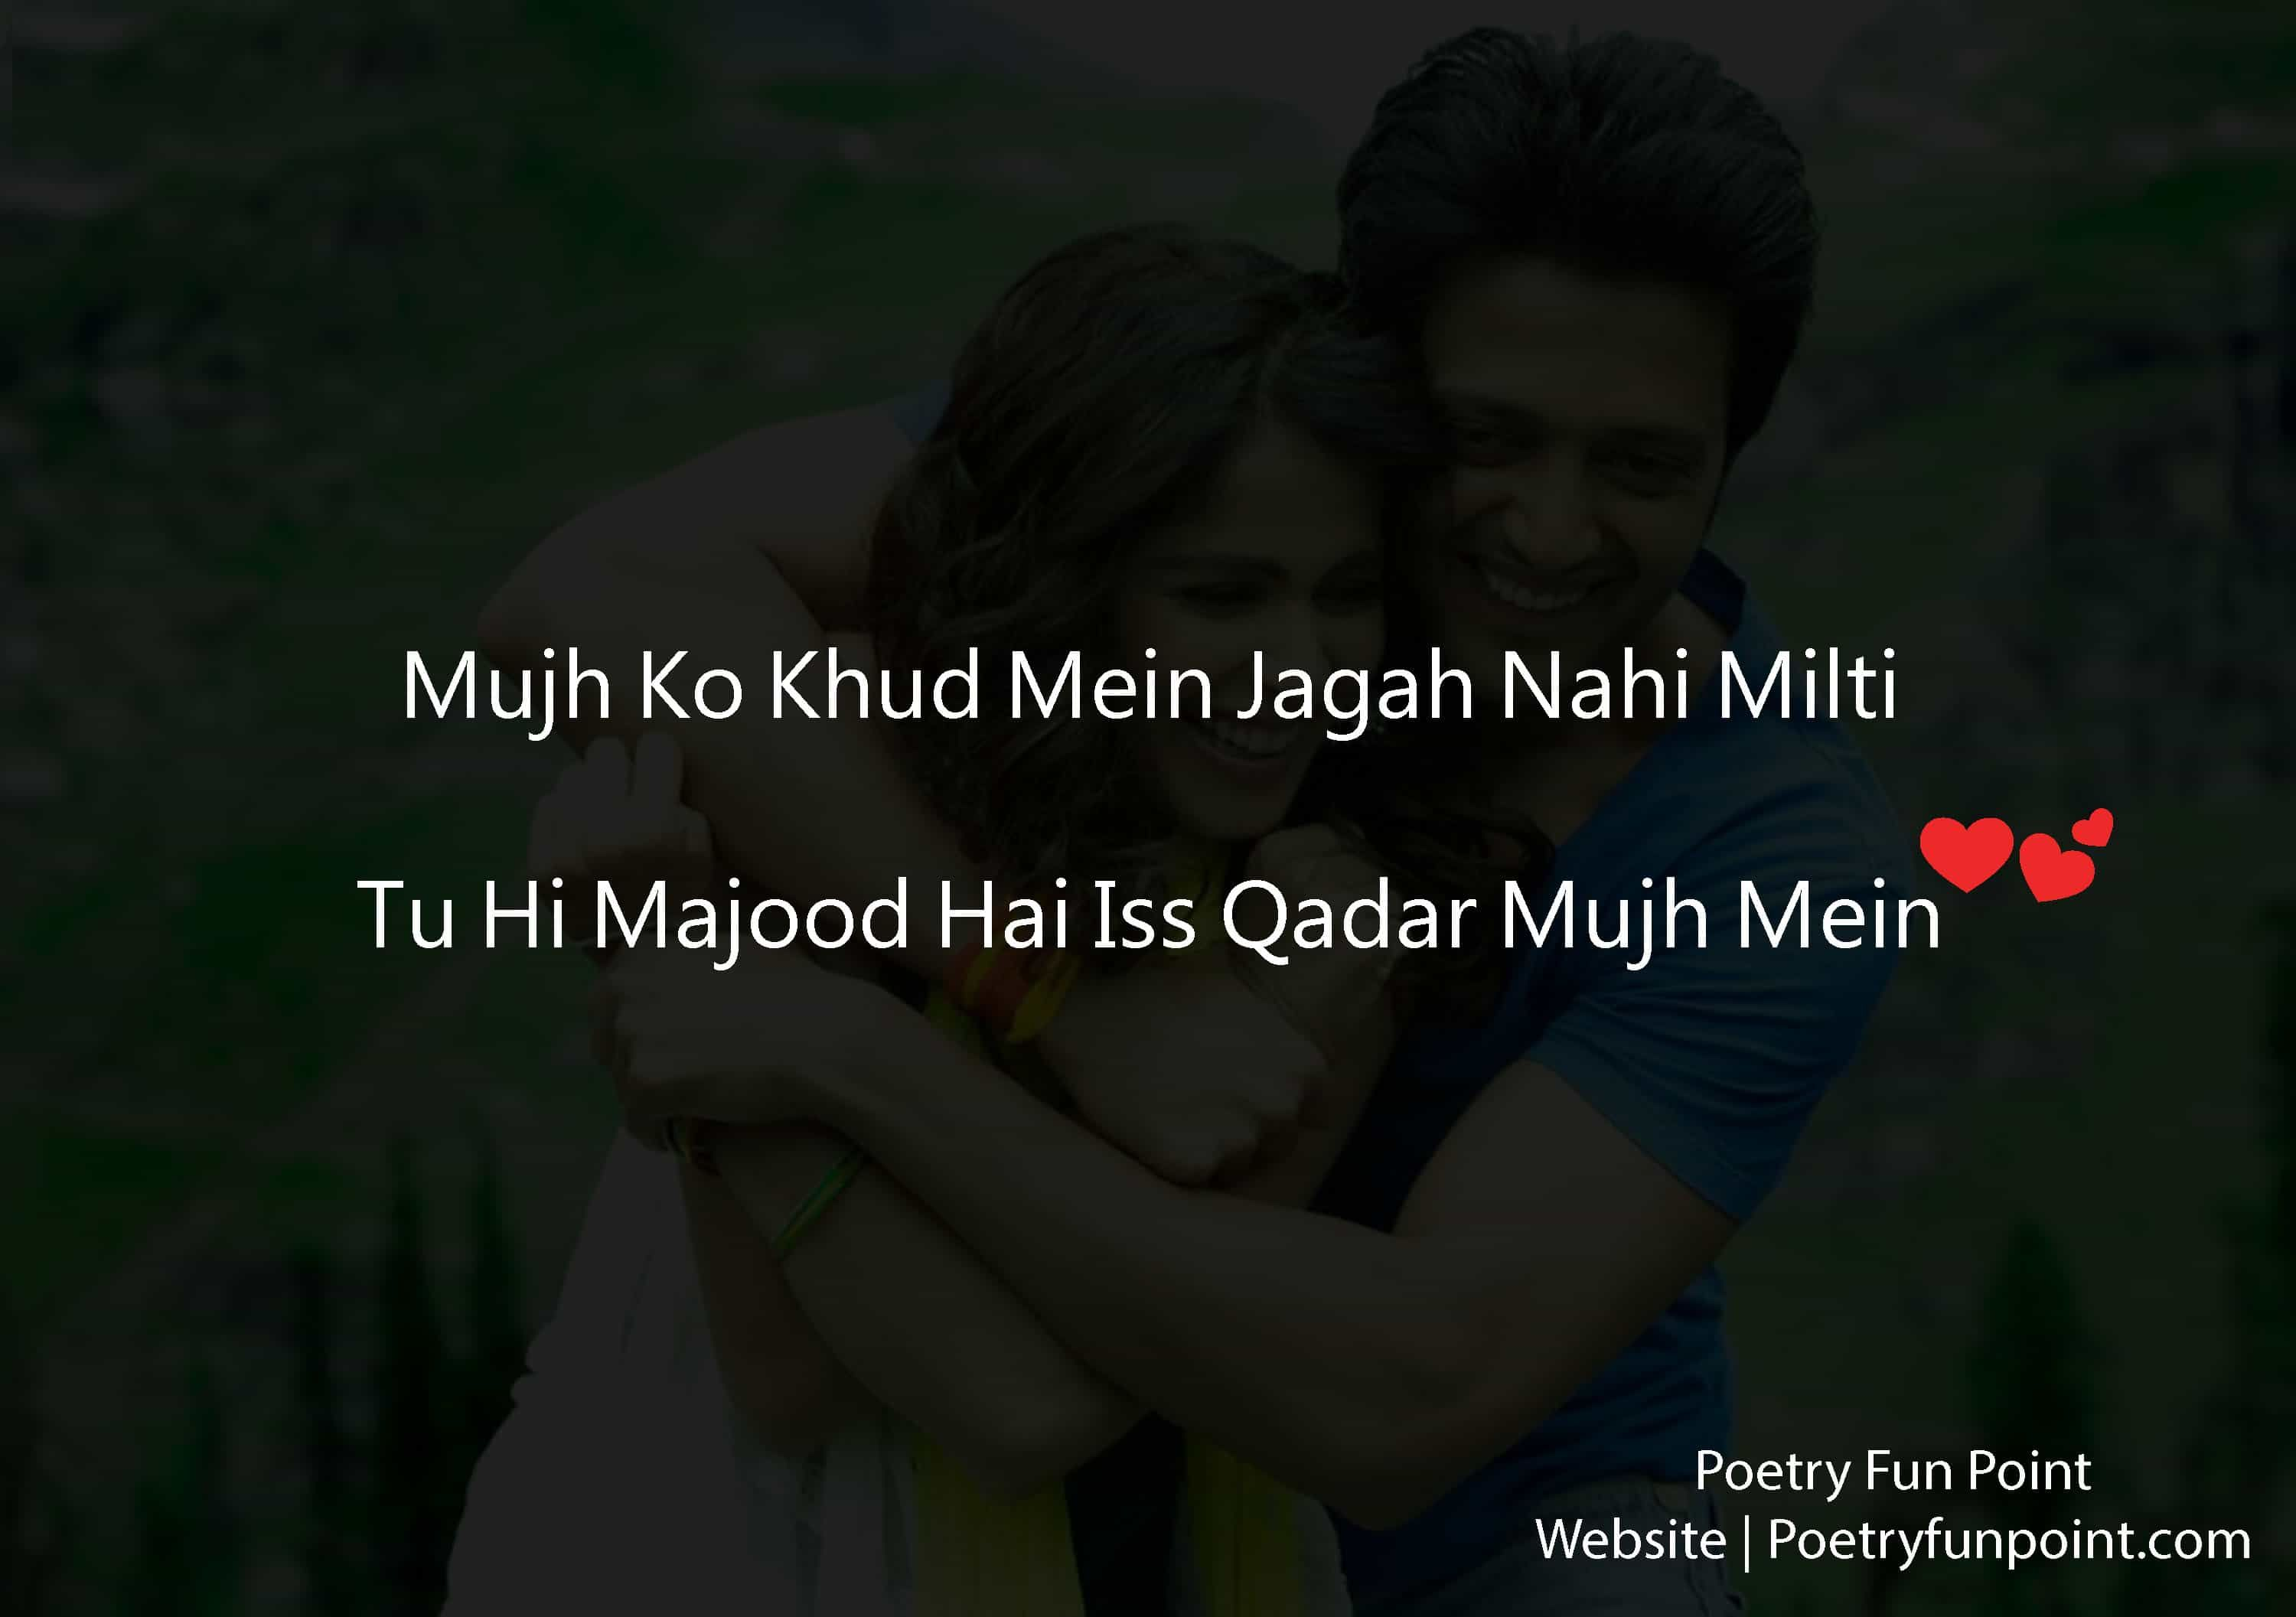 Love poetry sad poetry urdu shayari two line poetry 4 line love poetry sad poetry urdu shayari two line poetry 4 line poetry altavistaventures Image collections